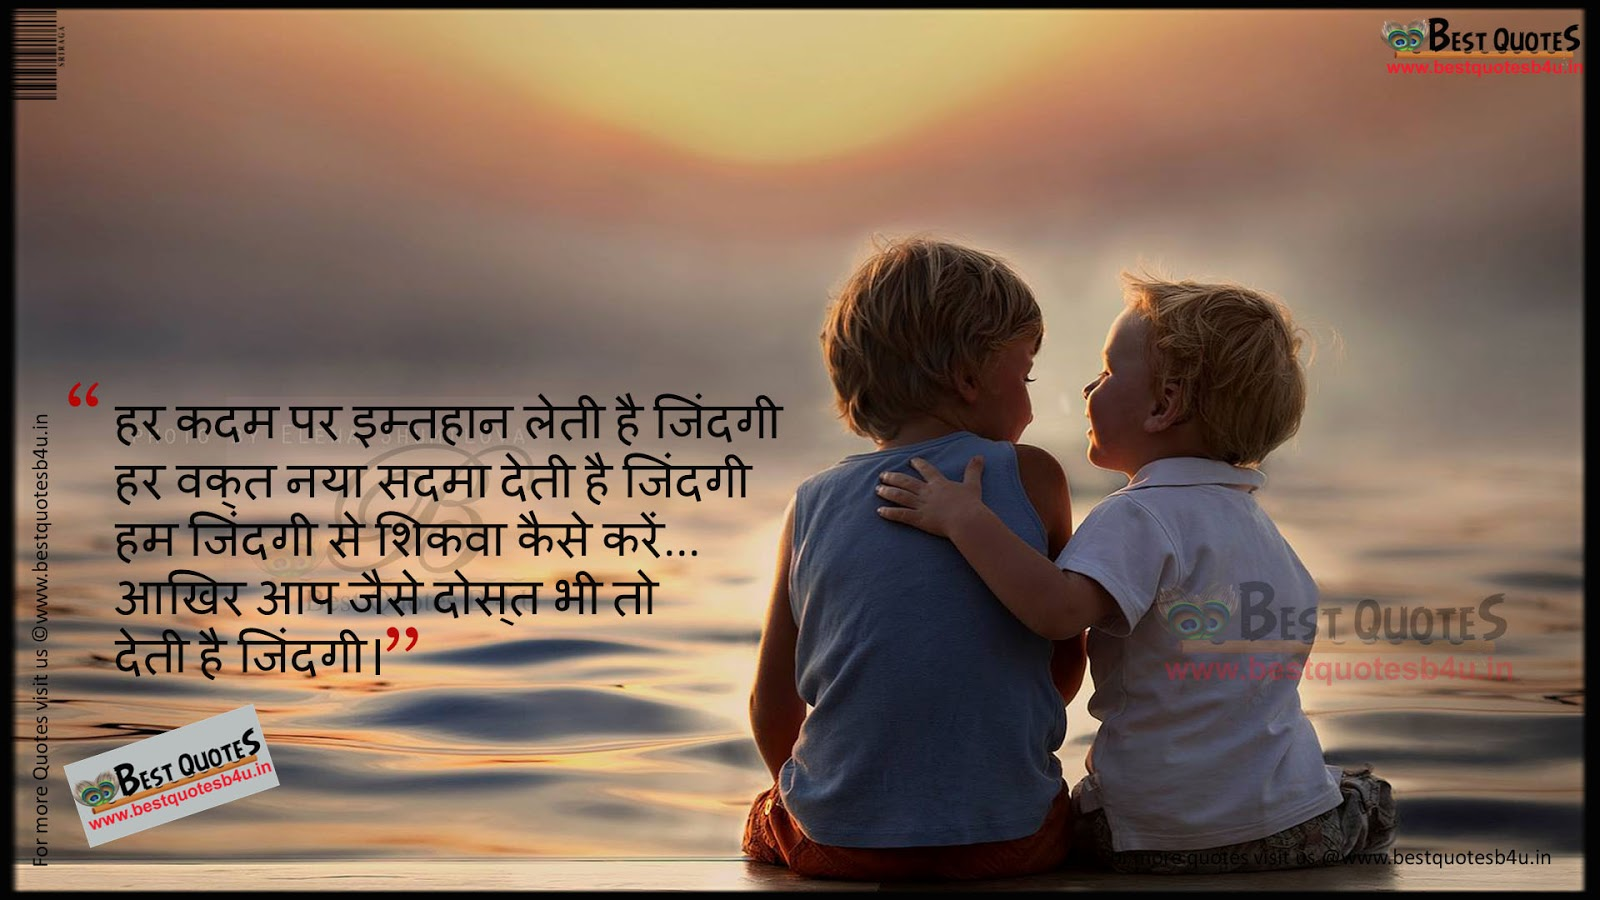 Best Friendship Quotes in hindi 130   Like Share Follow